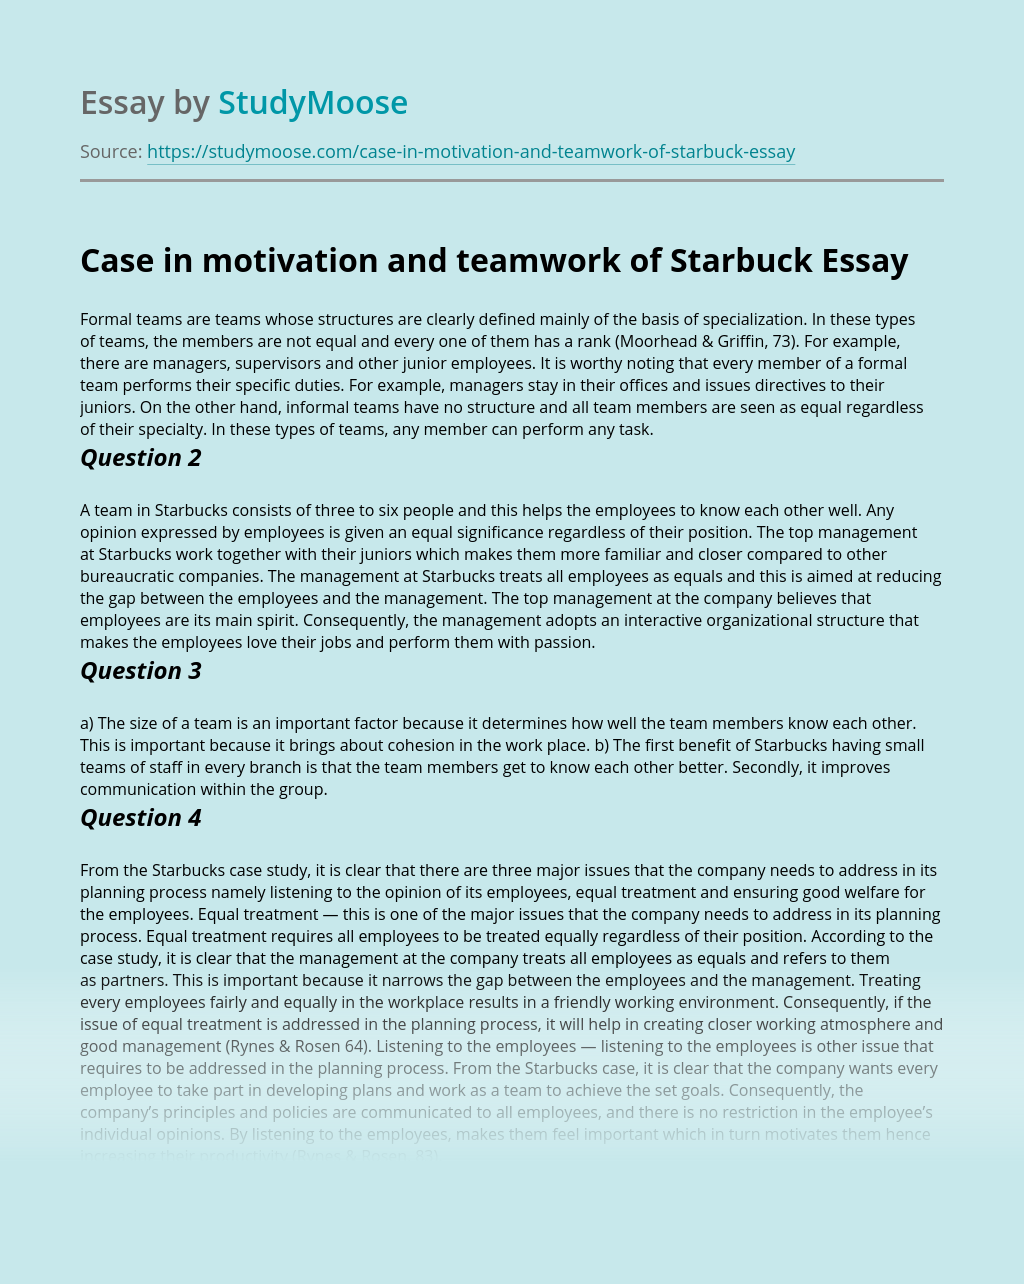 Case in motivation and teamwork of Starbuck